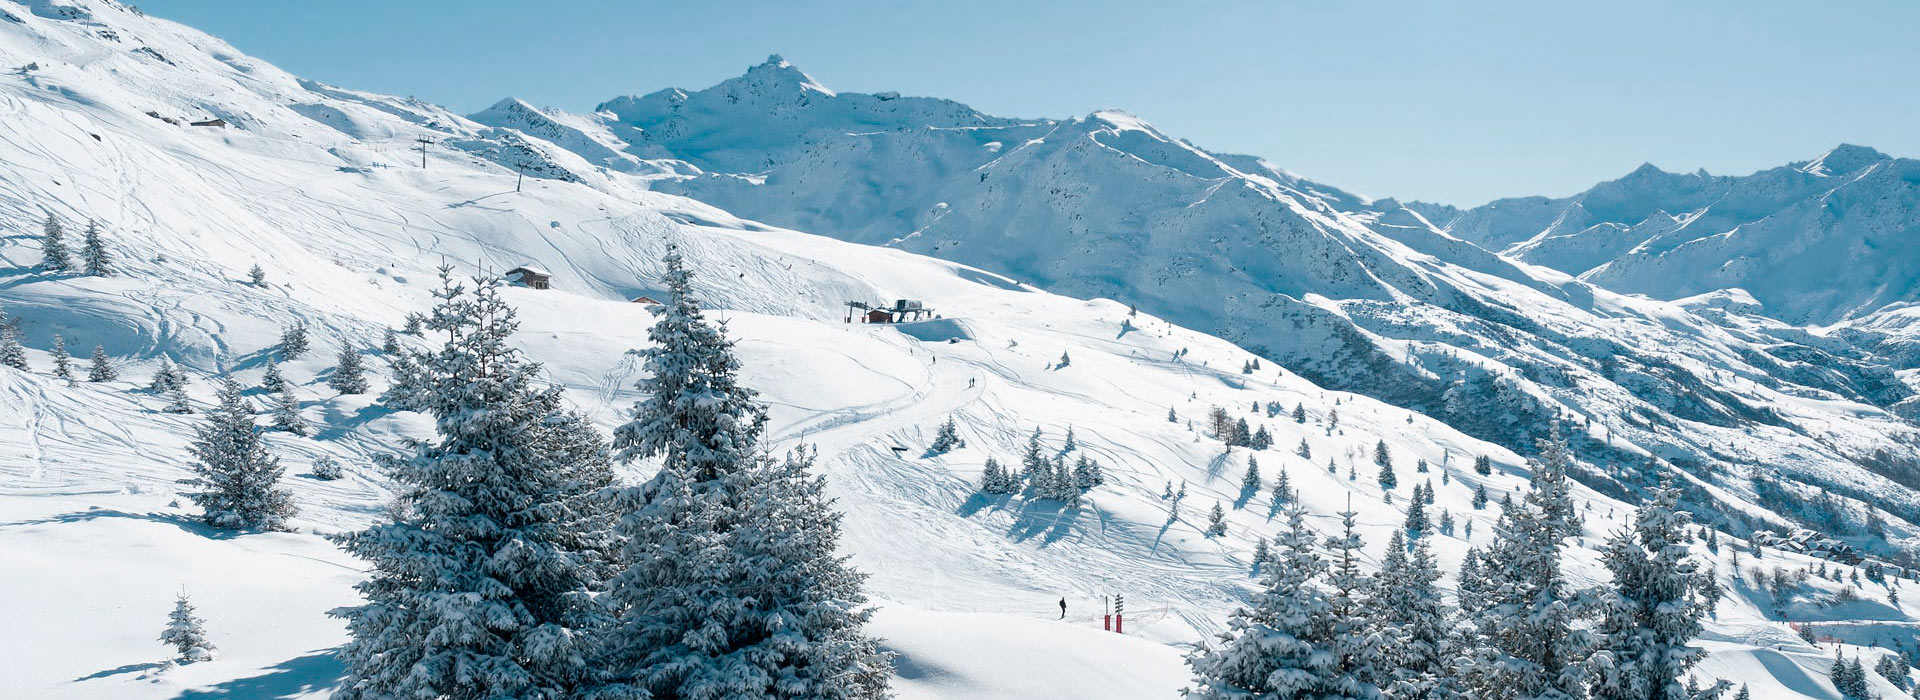 Alpine ski resorts plagued by lack of snow - Wide Overview Of Mountainside With Snow Covered Trees And Skier On Piste